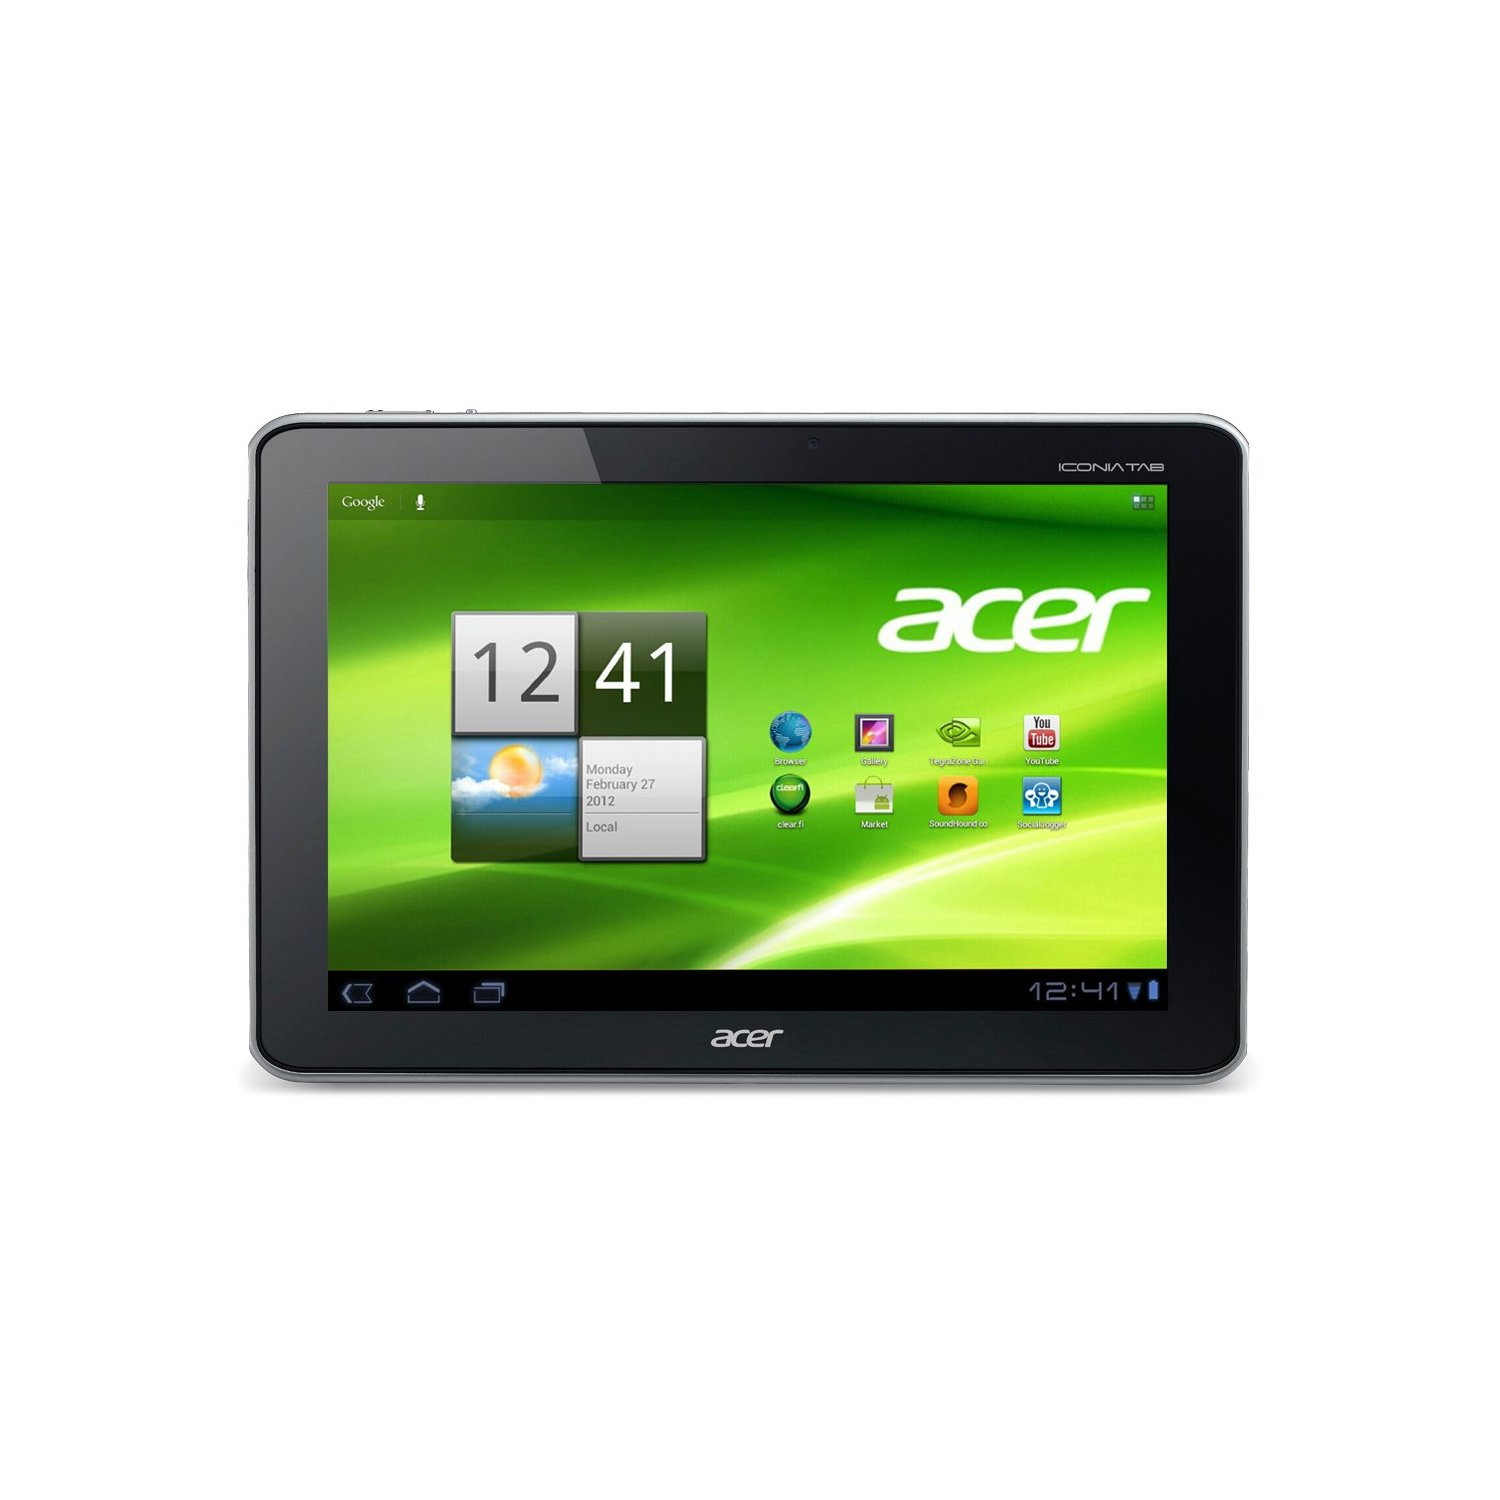 Preisvergleich App Lebensmittel Saturn Super Sunday Deals Acer Iconia A701 10 1 Quot Full Hd